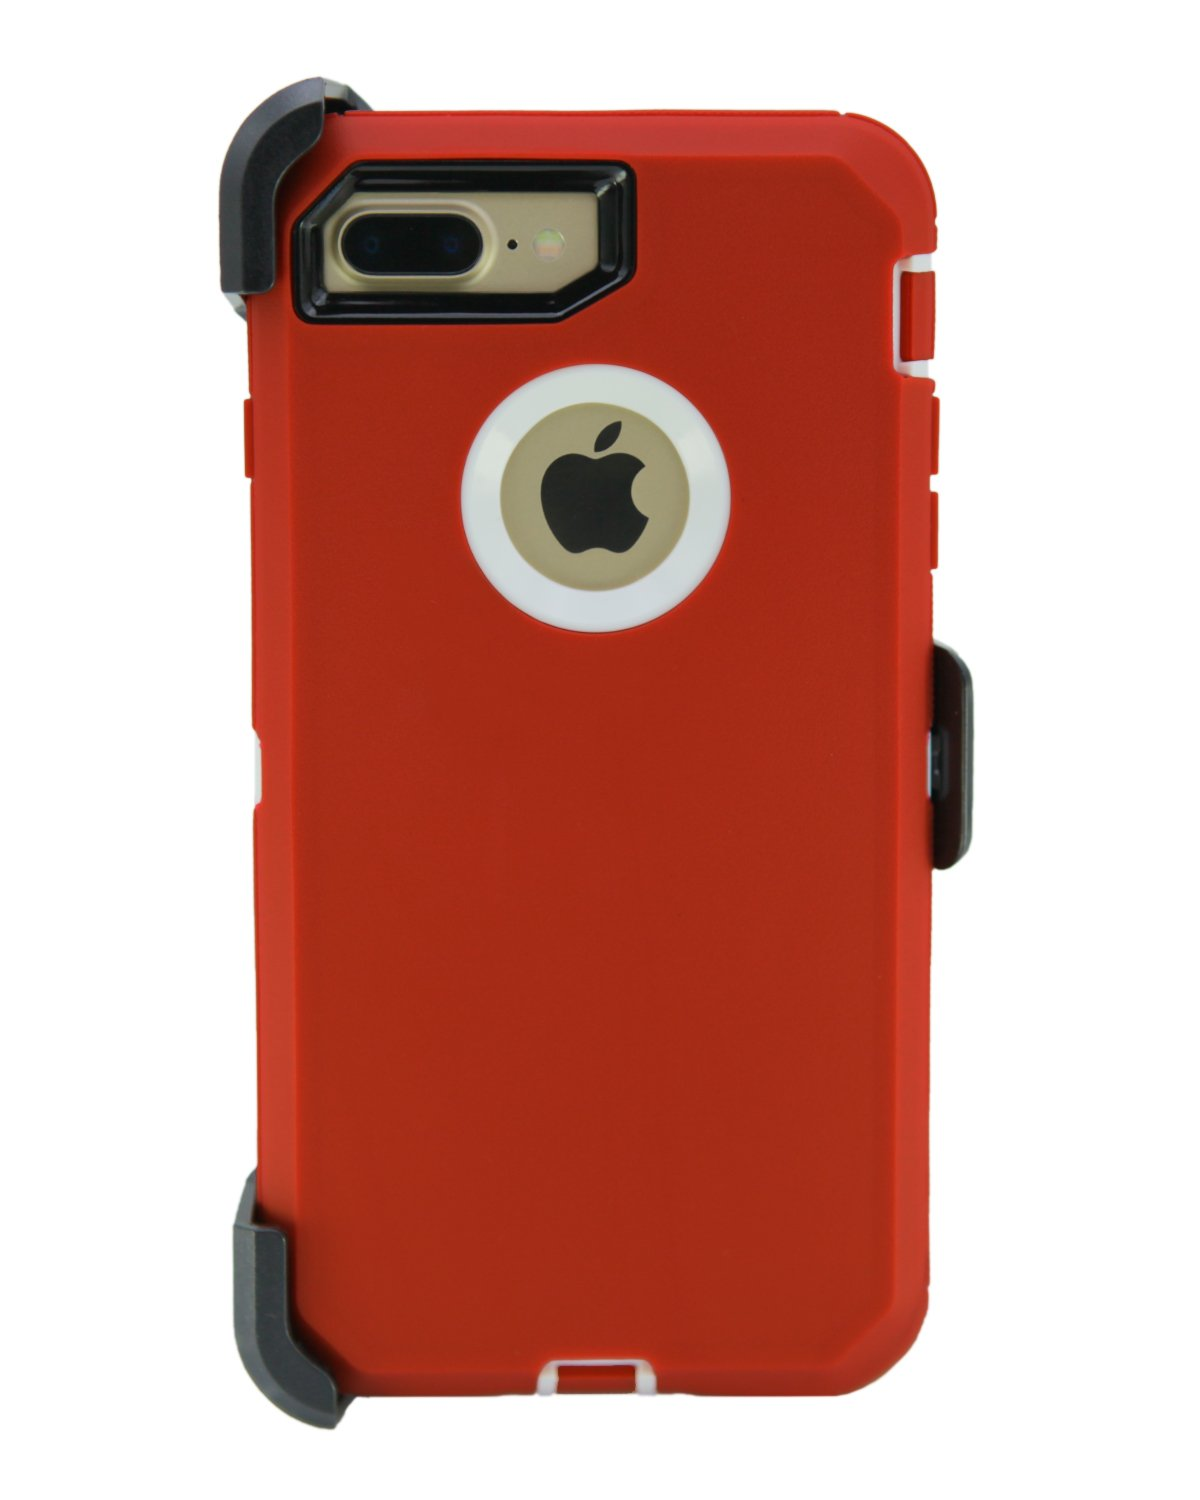 WallSkiN Turtle Series Cases for iPhone 7 Plus/iPhone 8 Plus (Only) Full Body Protection with Kickstand & Holster - Garnet (Red/White)